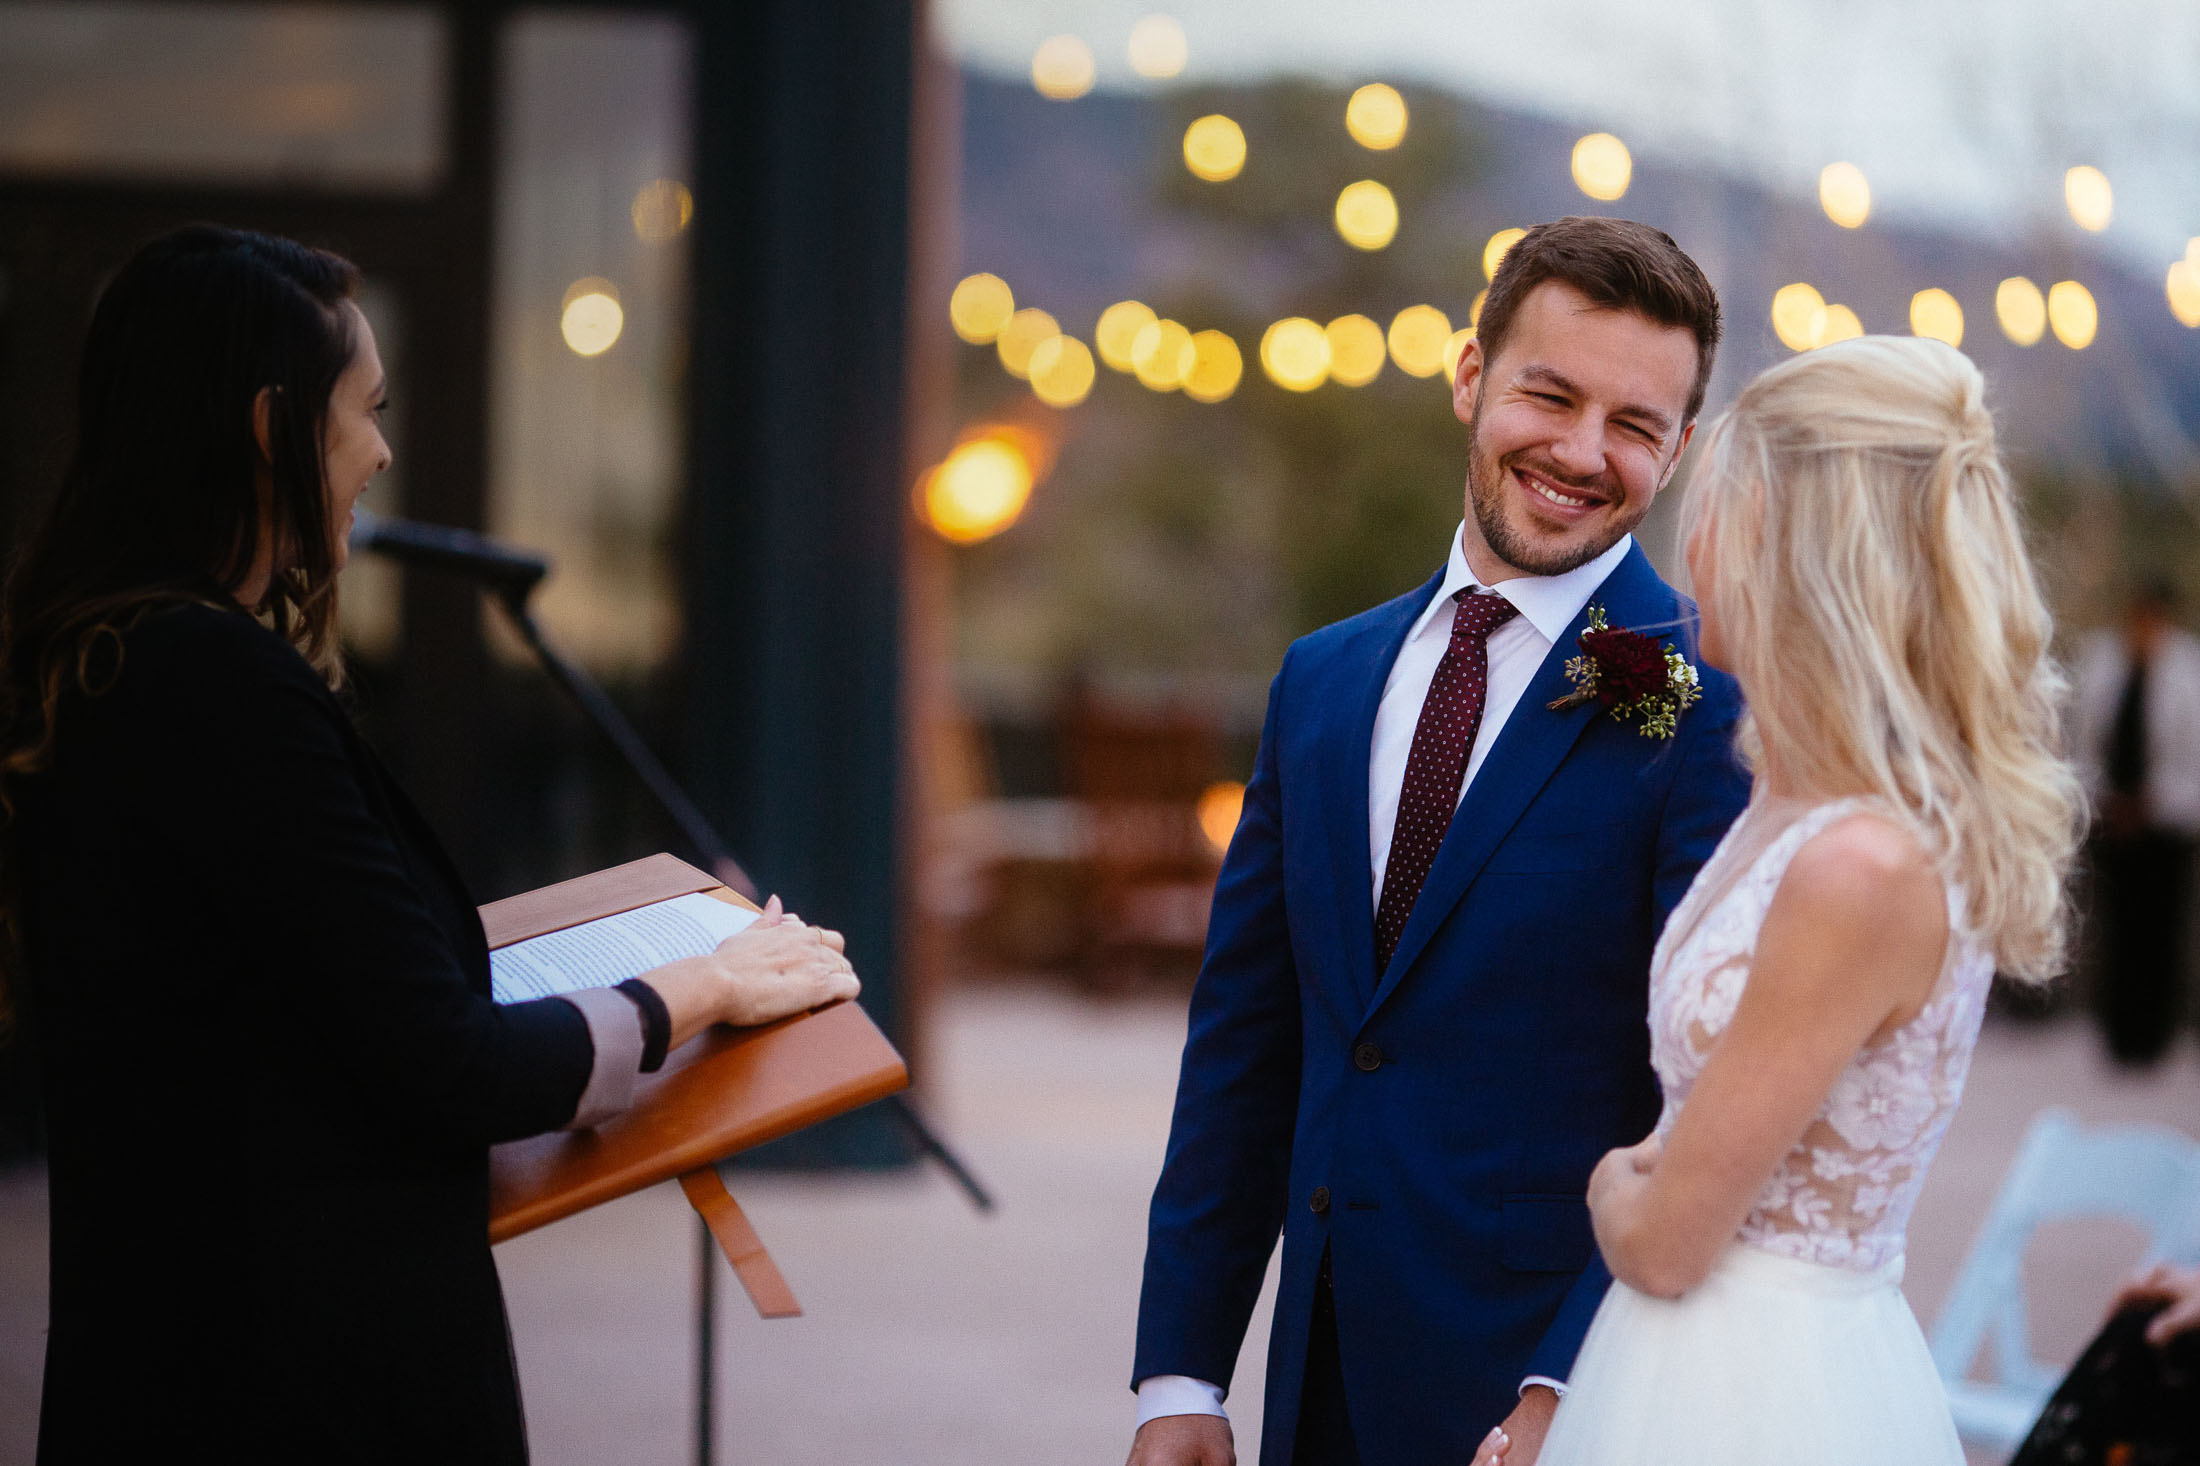 Grooms smile at bride during wedding ceremony.